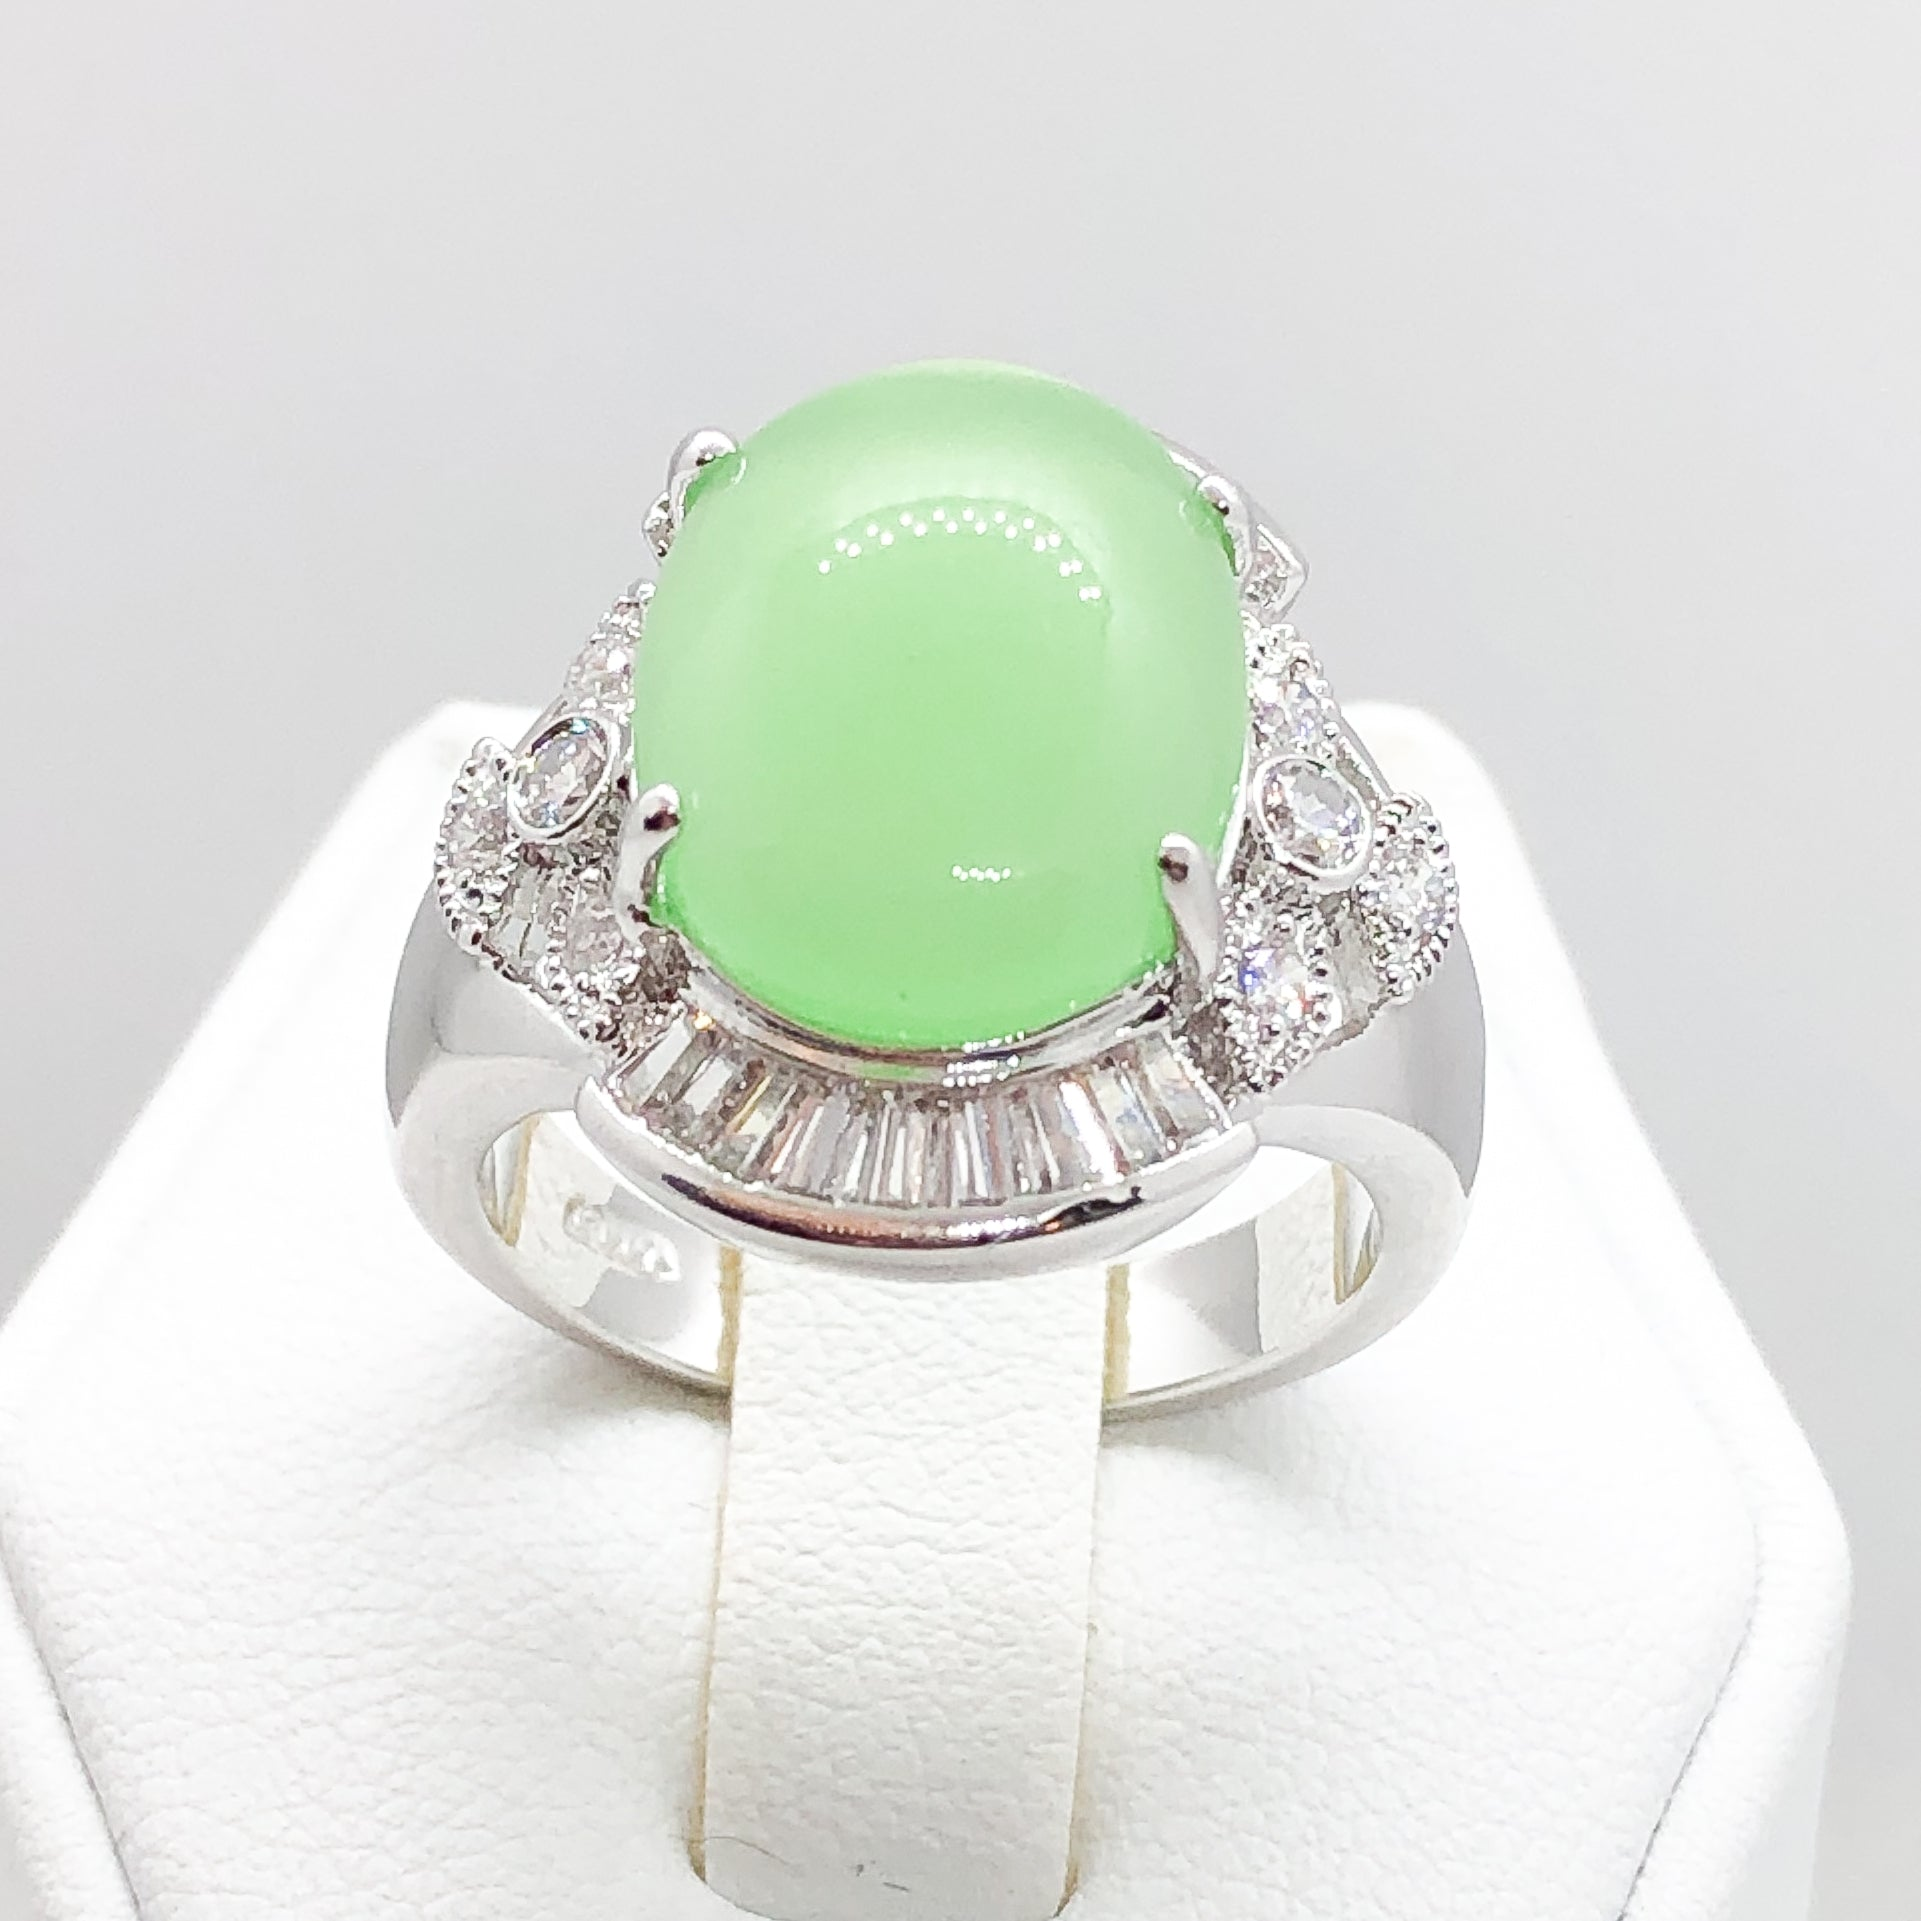 ID:R3698 Women Fashion Jewelry 18K White Gold GF Marvelous Jade Ring With Clear Diamonique Accent Comfort Daily-Wear